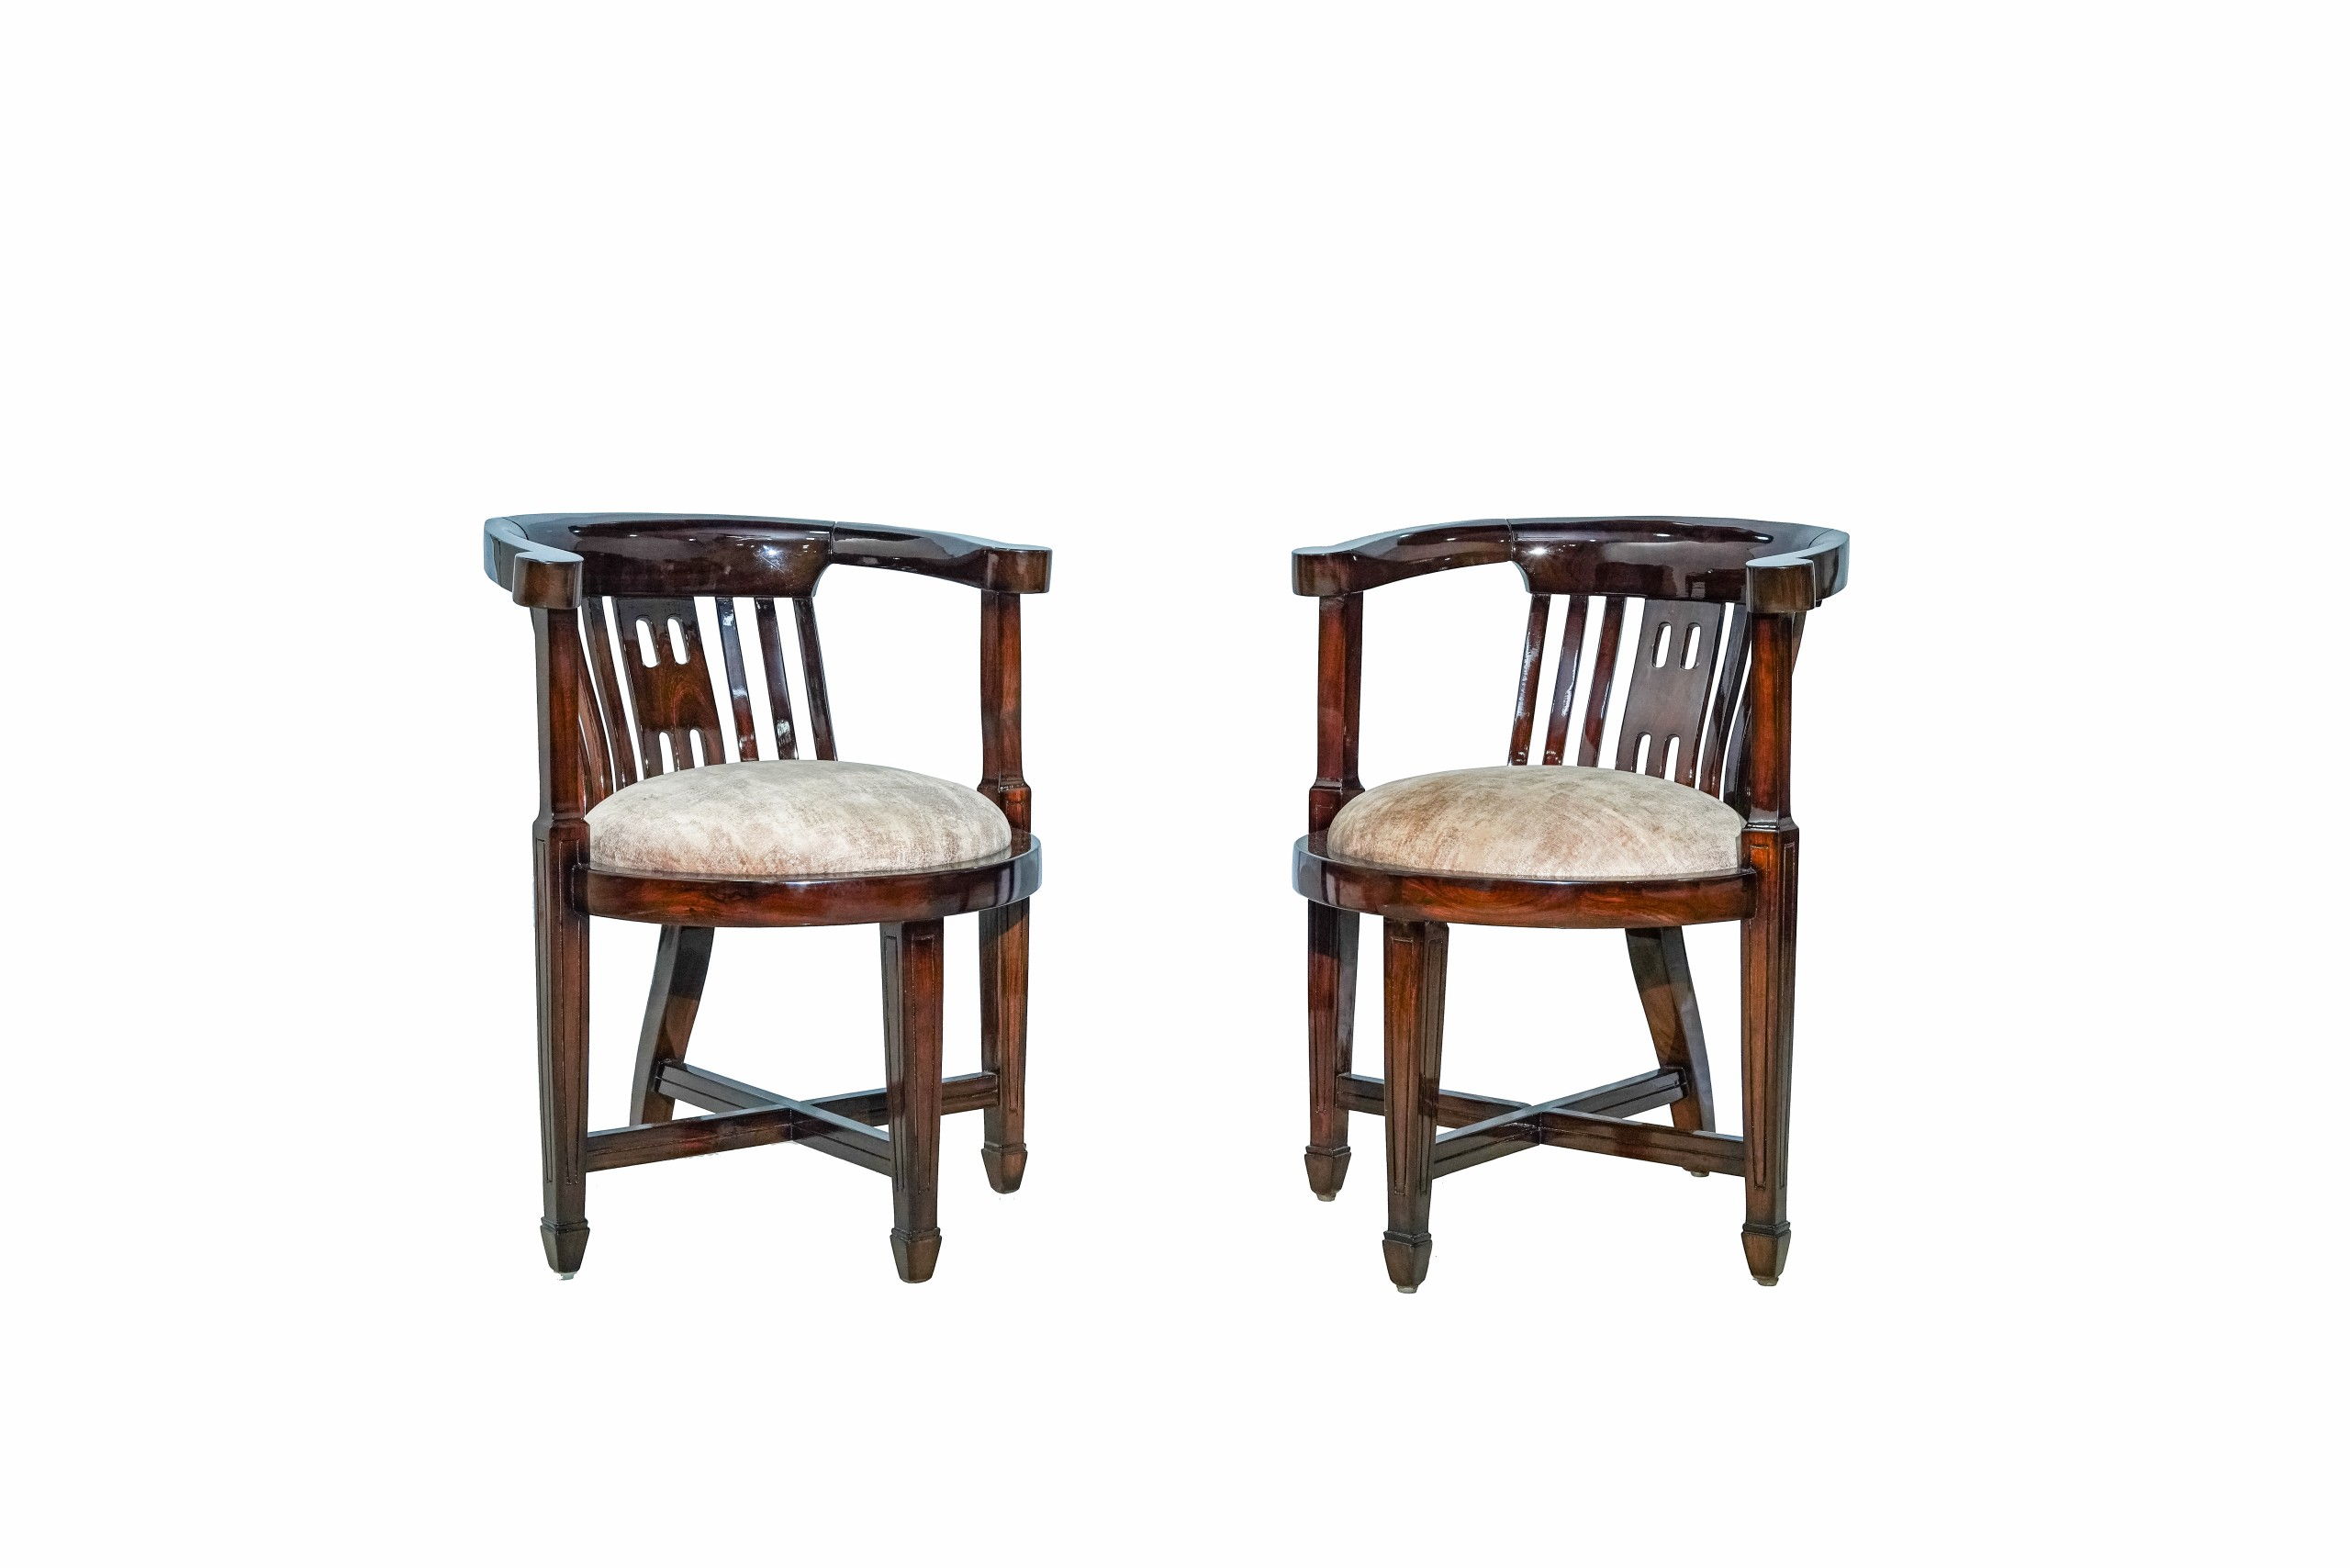 A Pair of Mini Chairs